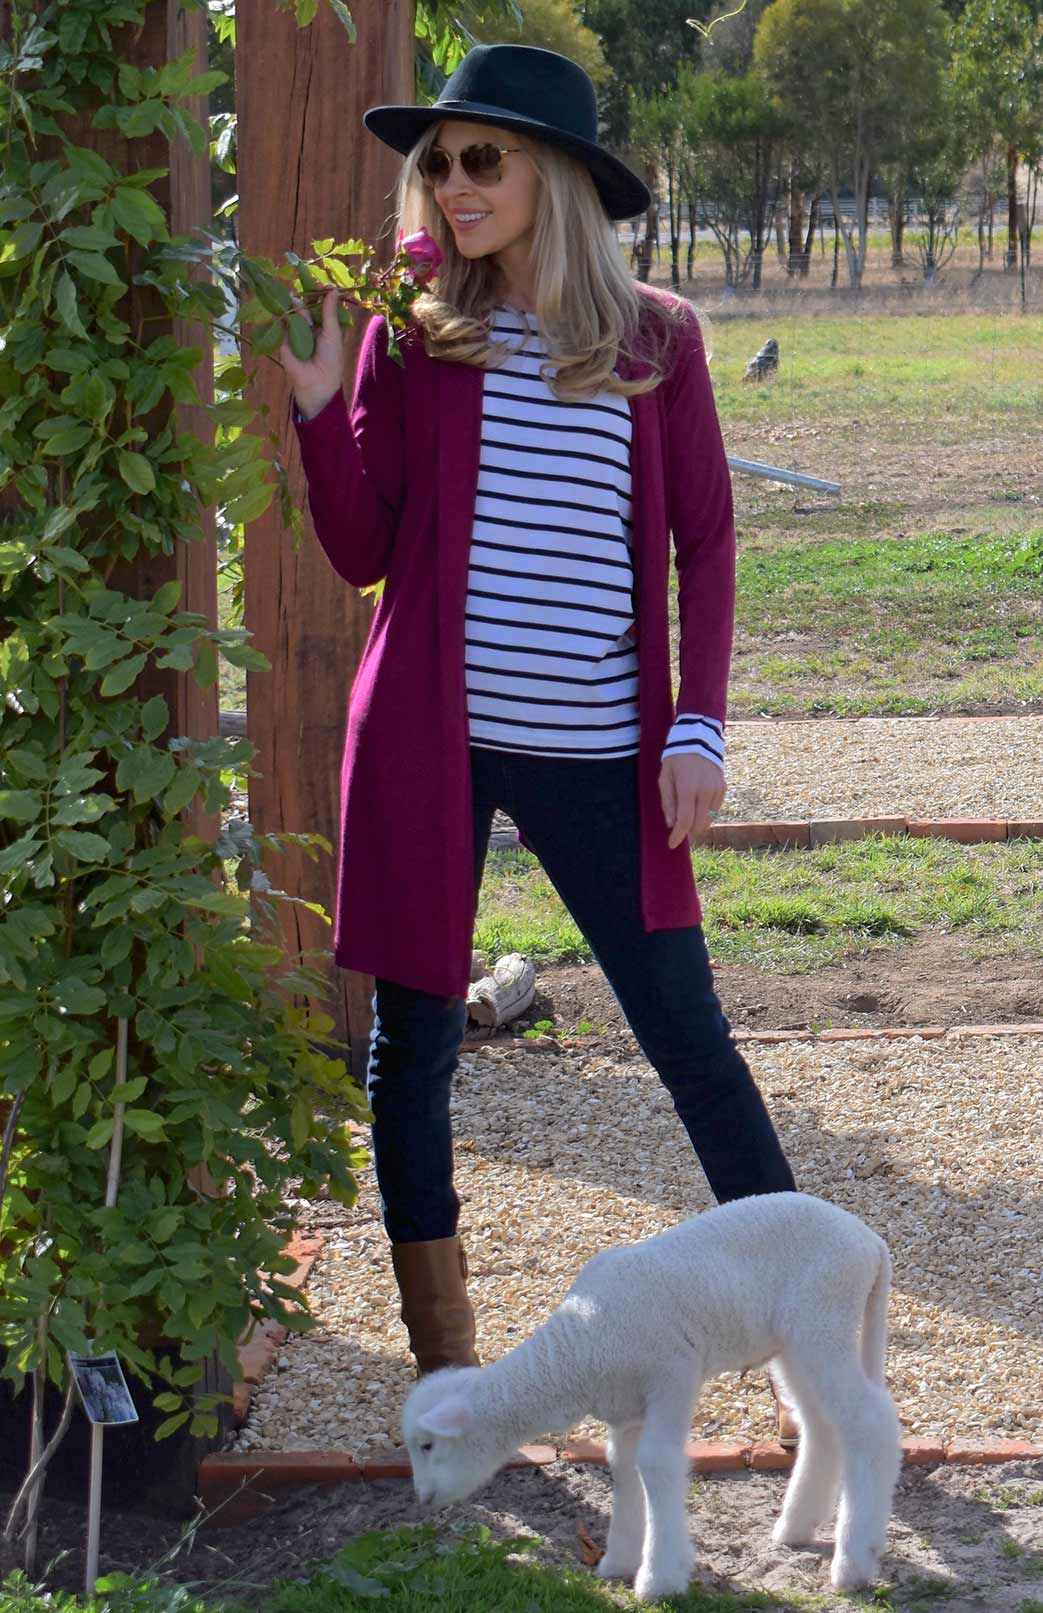 Drape Cardigan - Heavyweight - Women's Magenta Wool Drape Cardigan with no zips or fastenings - Smitten Merino Tasmania Australia